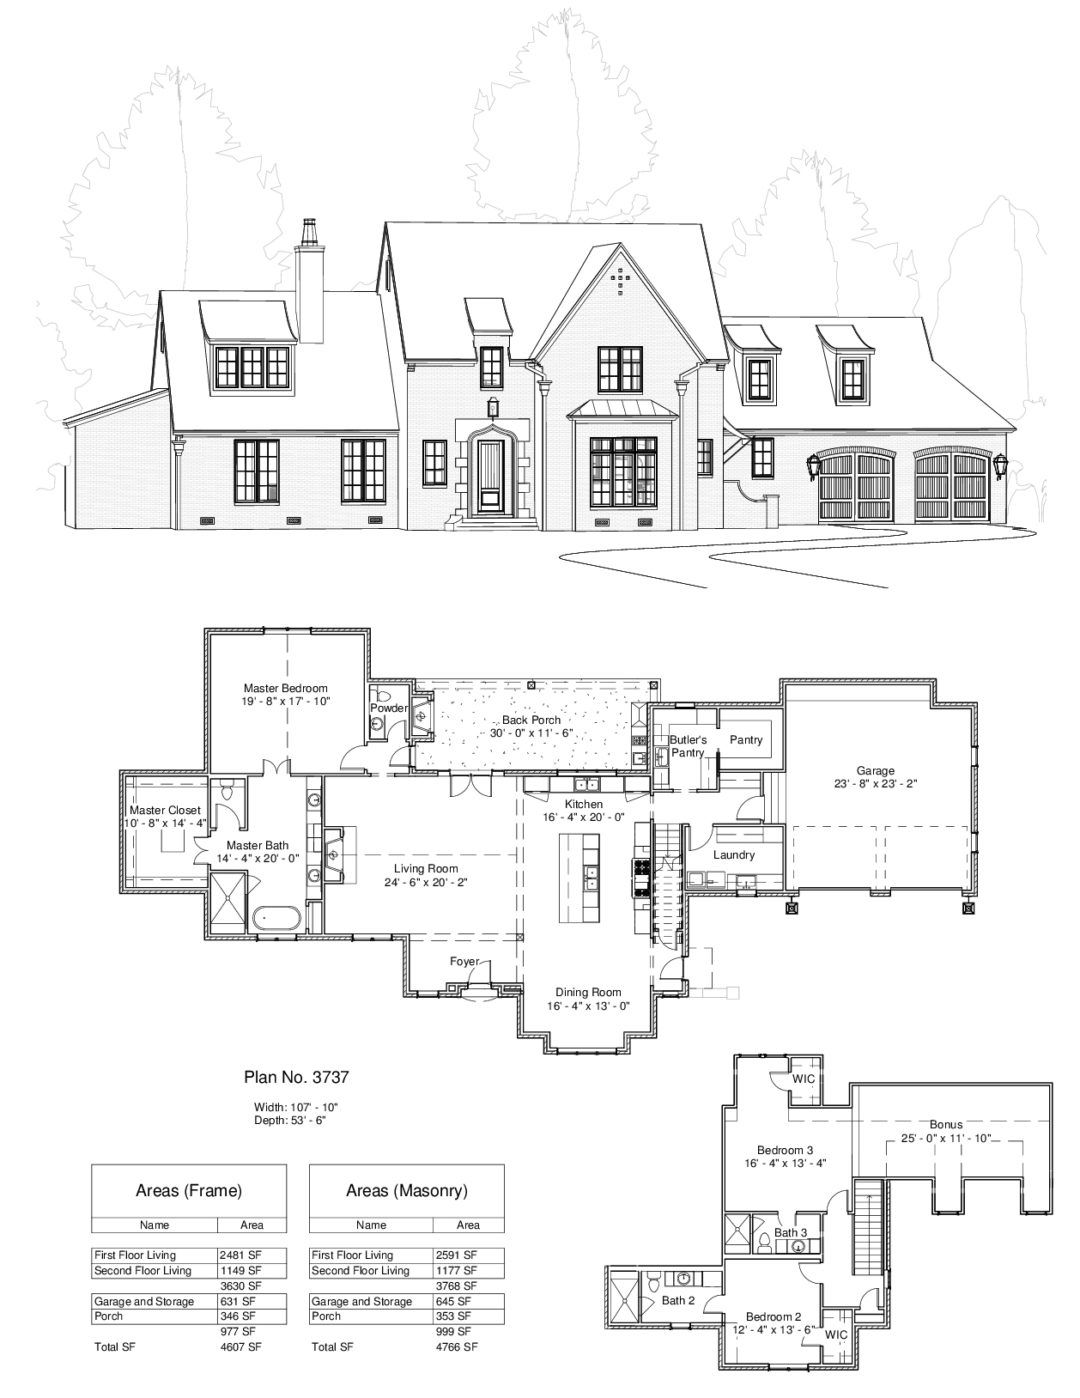 Plan 3737 Design Studio How To Plan House Plans Dream House Plans